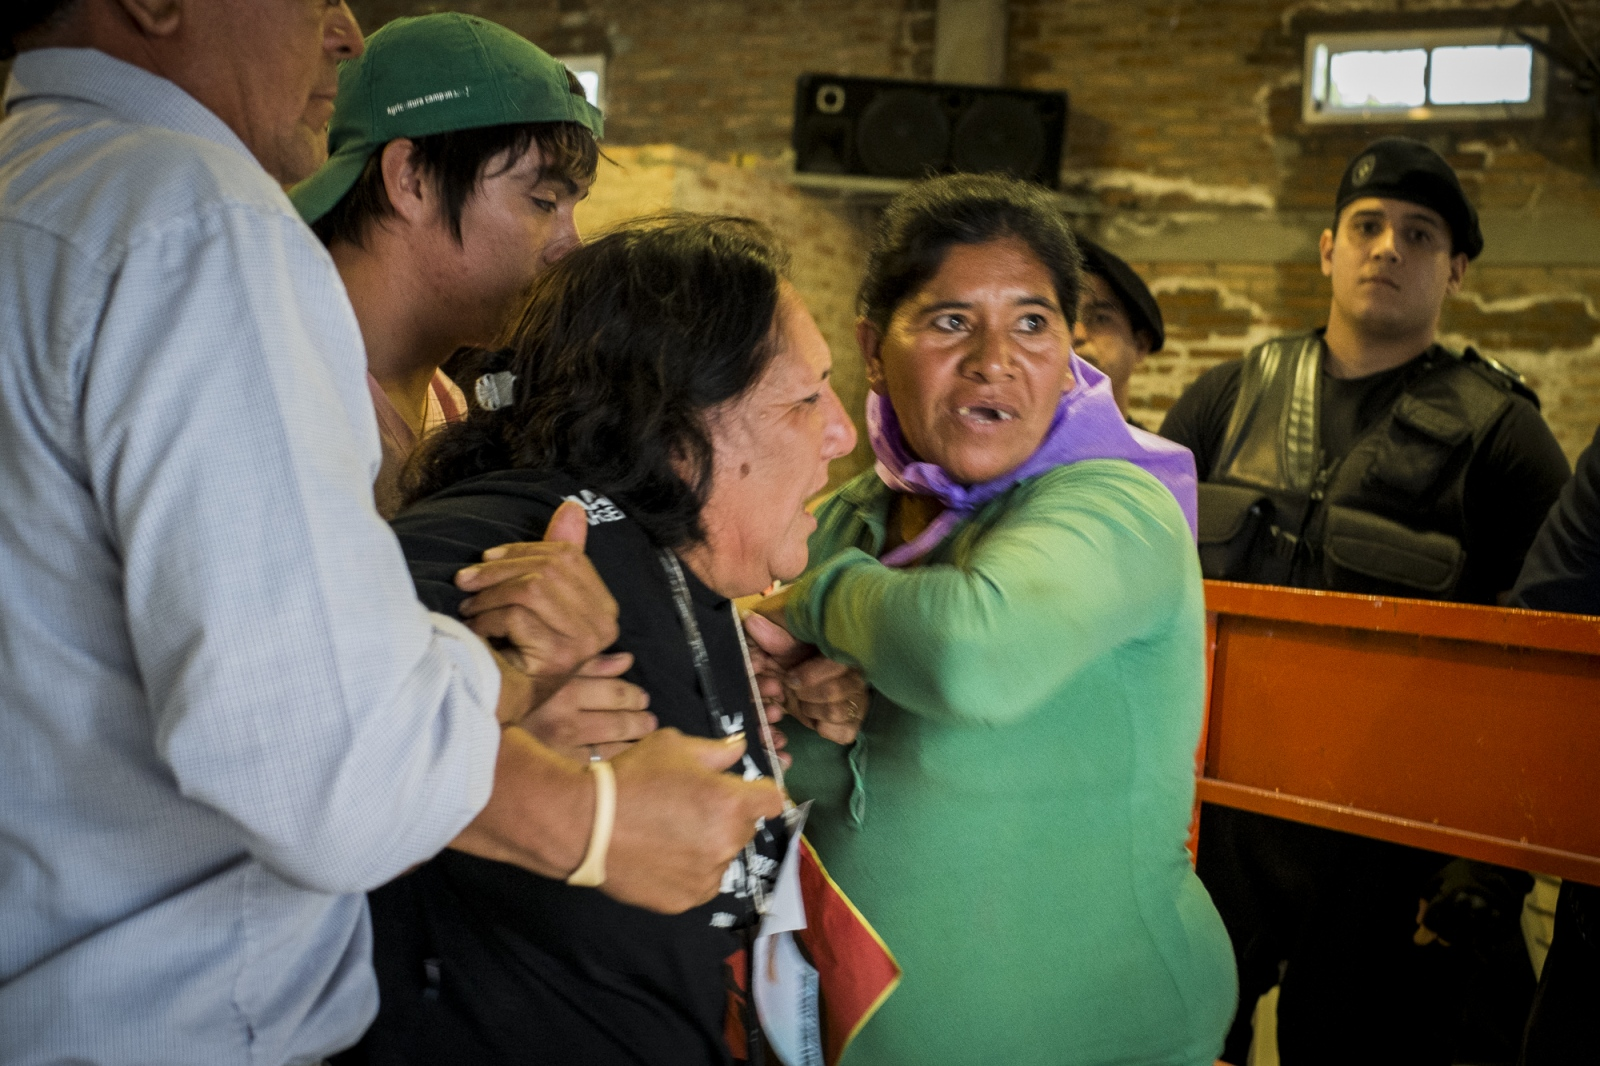 The mother of Cristian Ferreyra, shouts for justice during the trial on her son's assassination. Cristian Ferreyra a member of  the National Movement of Indigenous Farmers (MOCASE) was assassinated on the 16th of November 2011. Soy businessman Jorge Ciccioli, accused of being the mastermind of the      was at the end absolved of any crime, while his keeper, Javier Juárez, who pressed the trigger was sentanced to 10 years in prison.